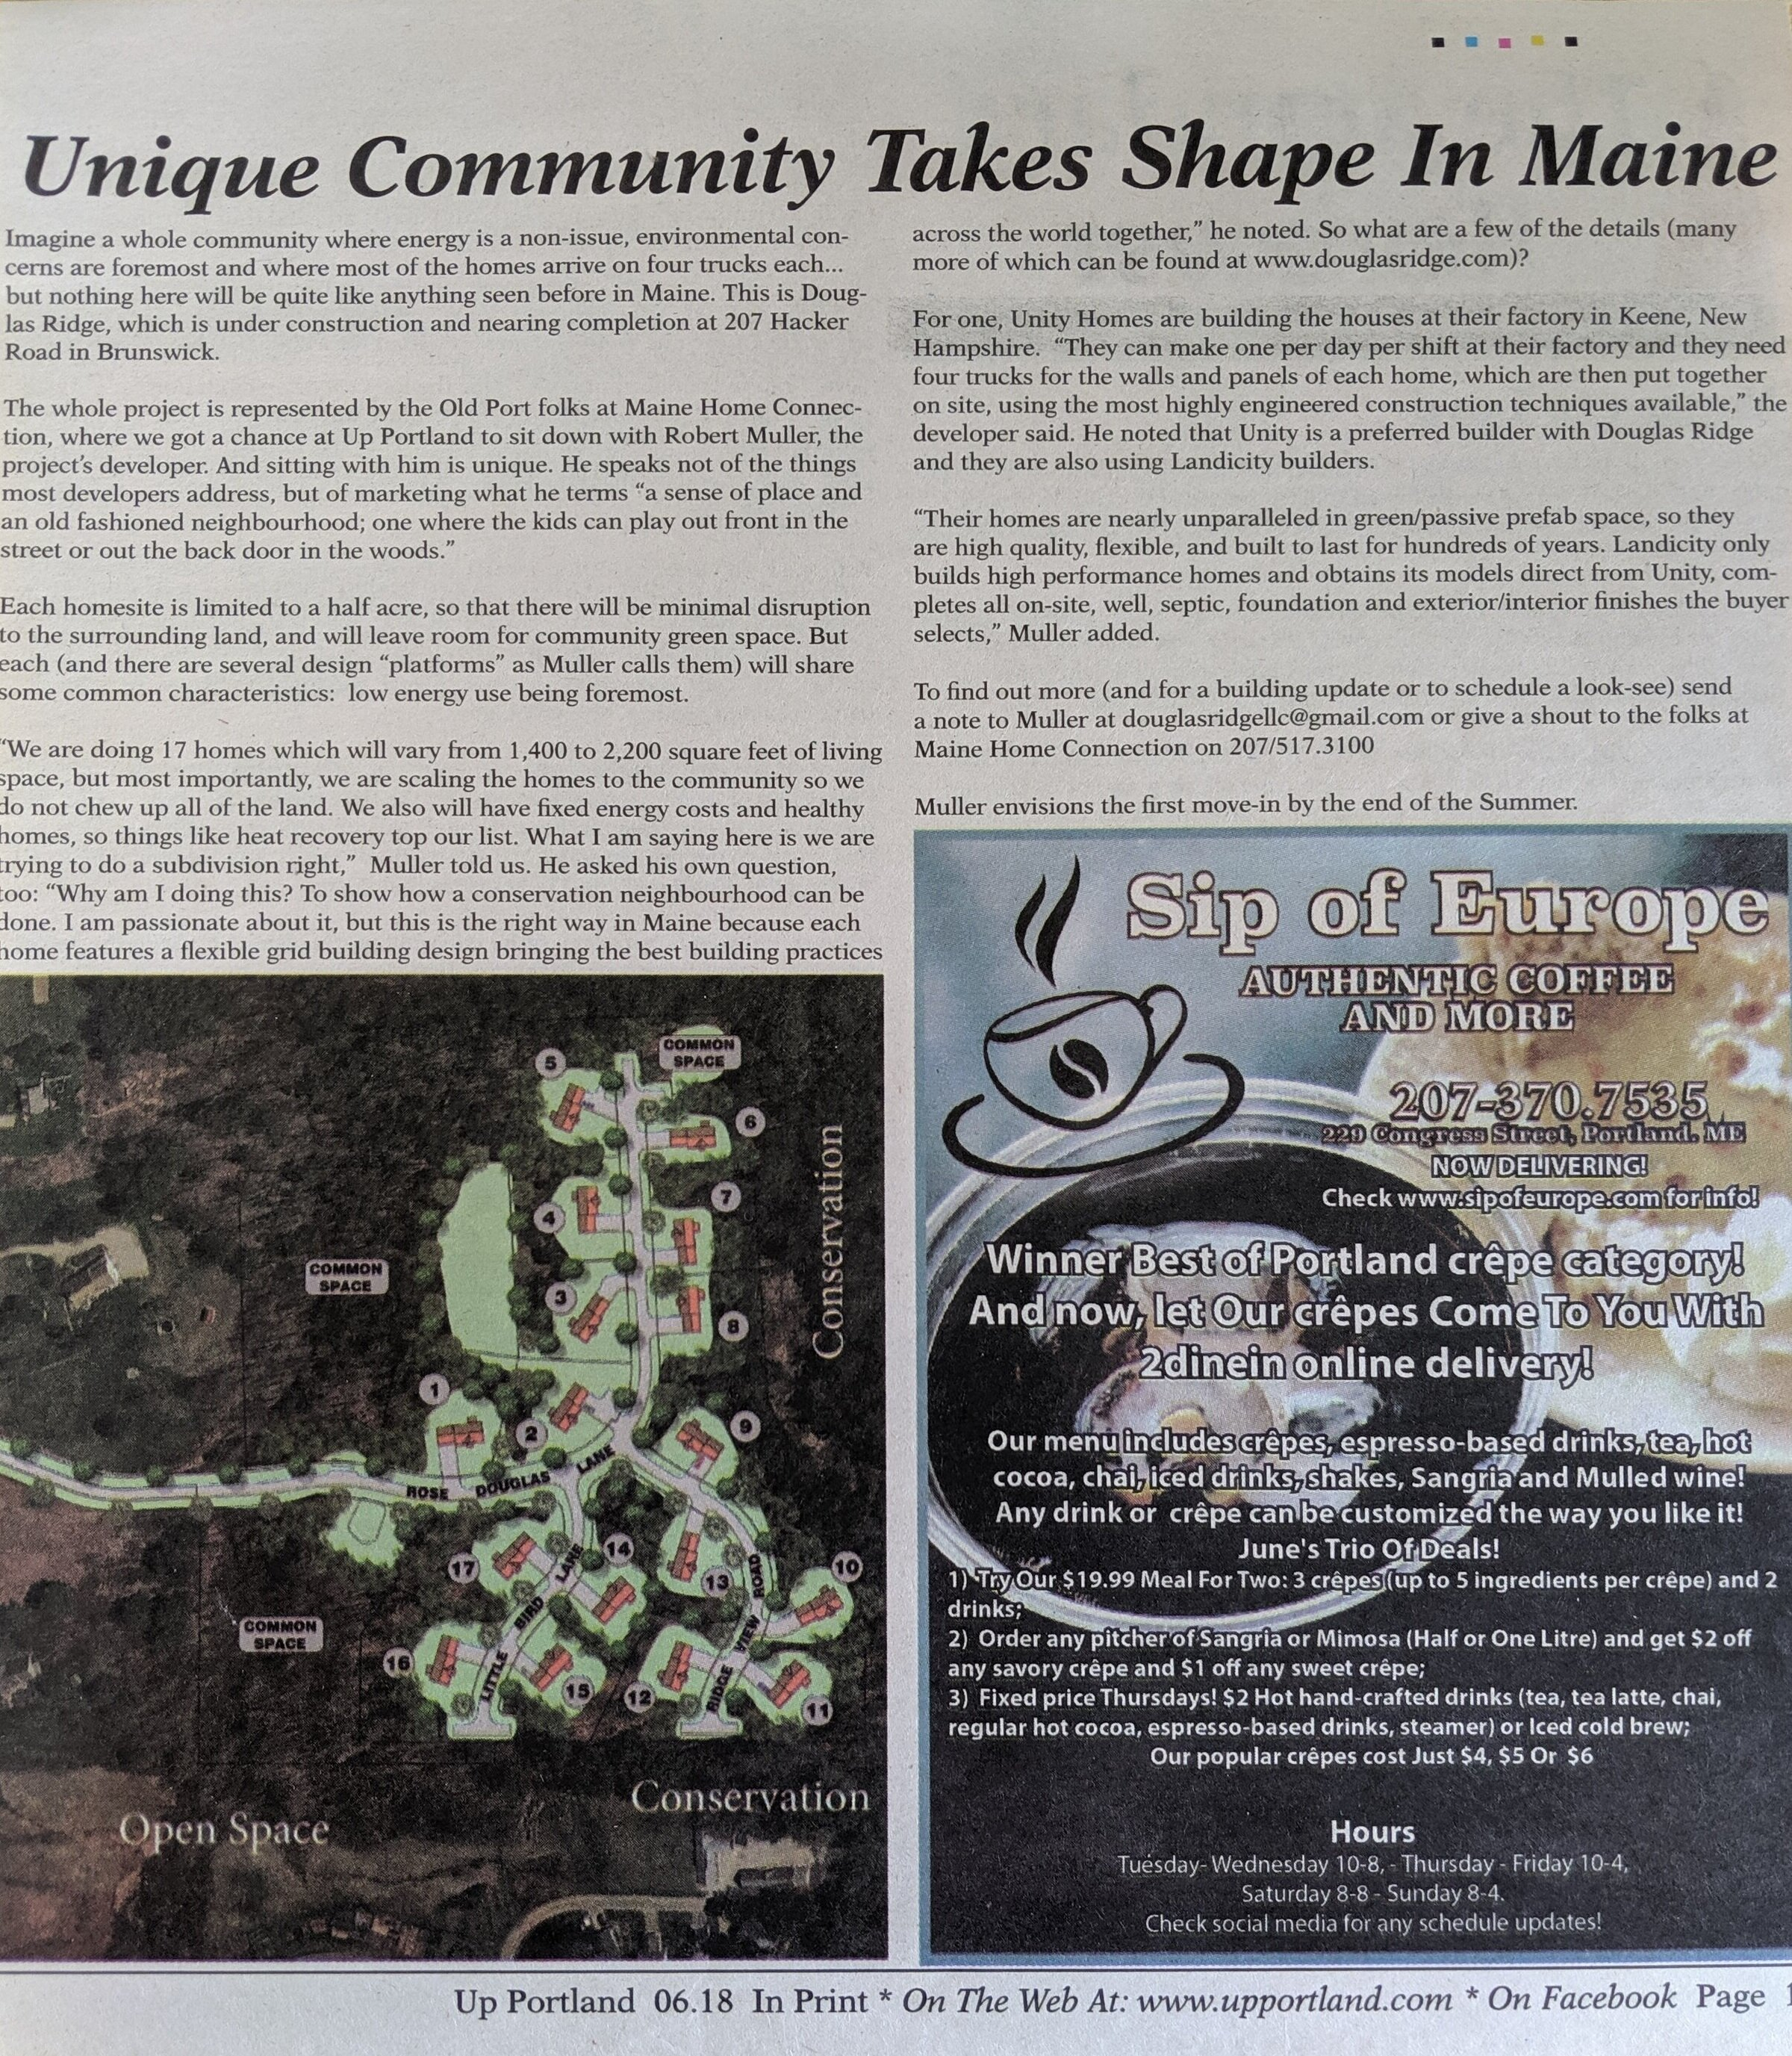 Local Press - Looking for local news and current events? Up Portland has you covered, and they did a piece focusing on Douglas Ridge